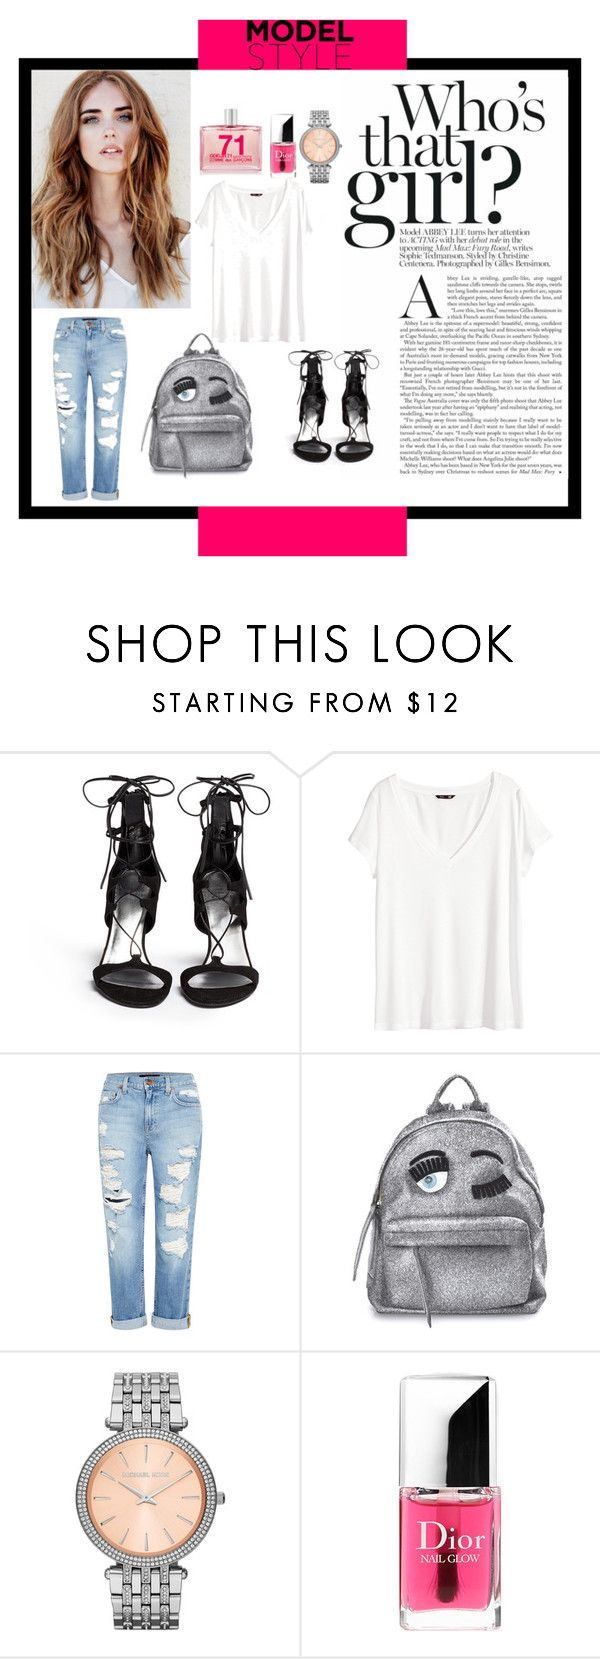 """Untitled #109"" by popescu-io on Polyvore featuring Stuart Weitzman, H&M, Genetic Denim, Chiara Ferragni, MICHAEL Michael Kors, Christian Dior and Comme des Garçons"